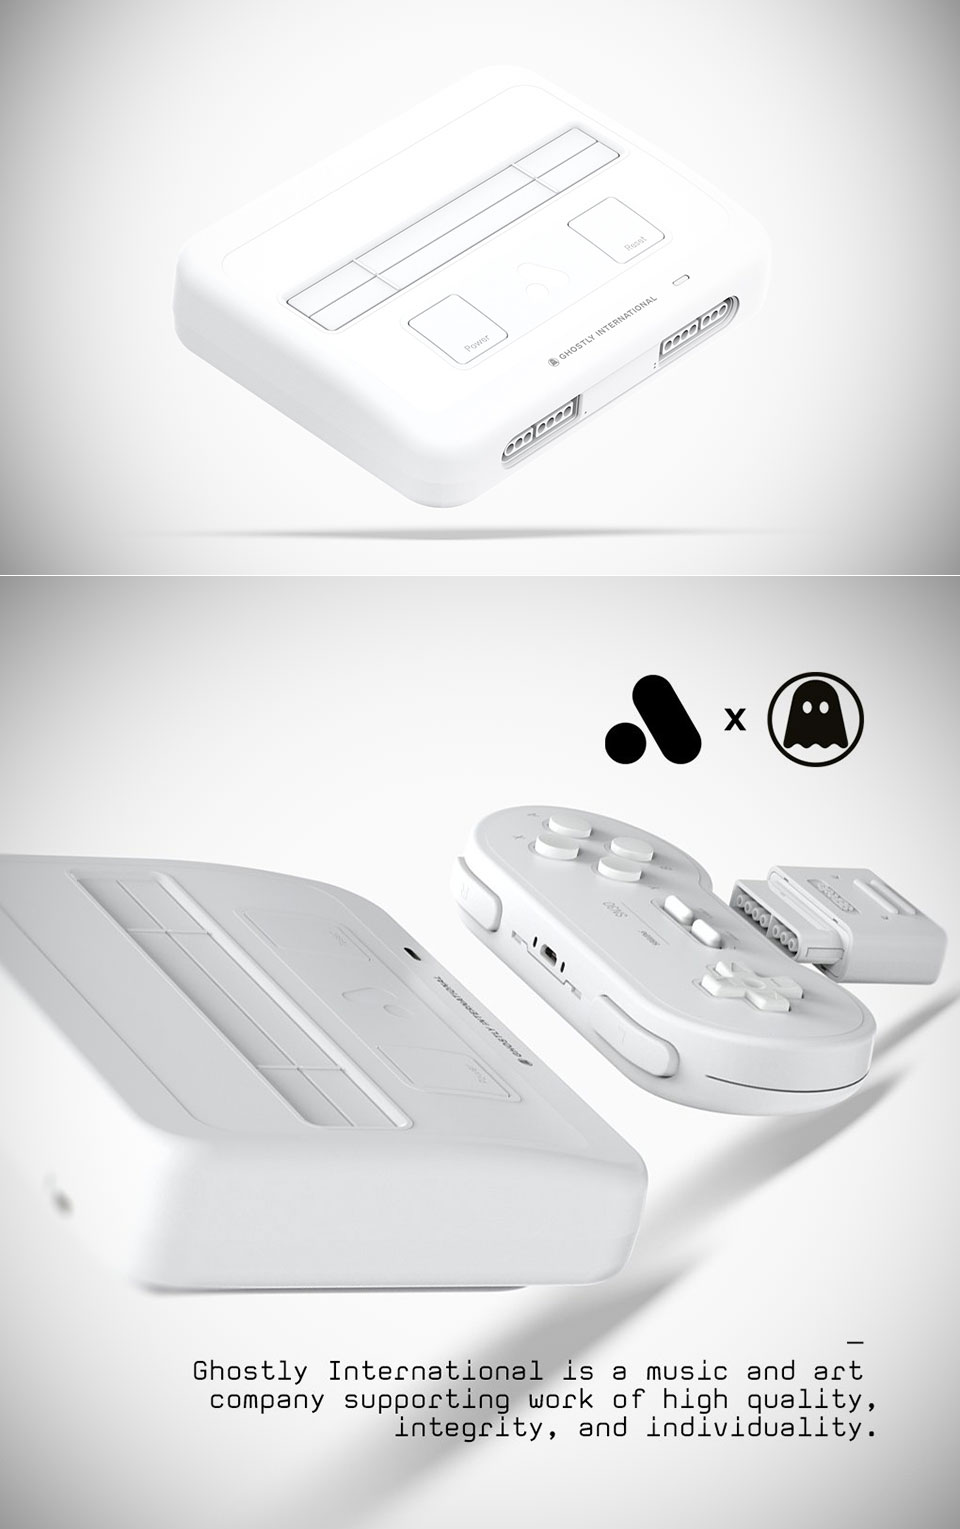 Ghostly x Analogue Super Nt